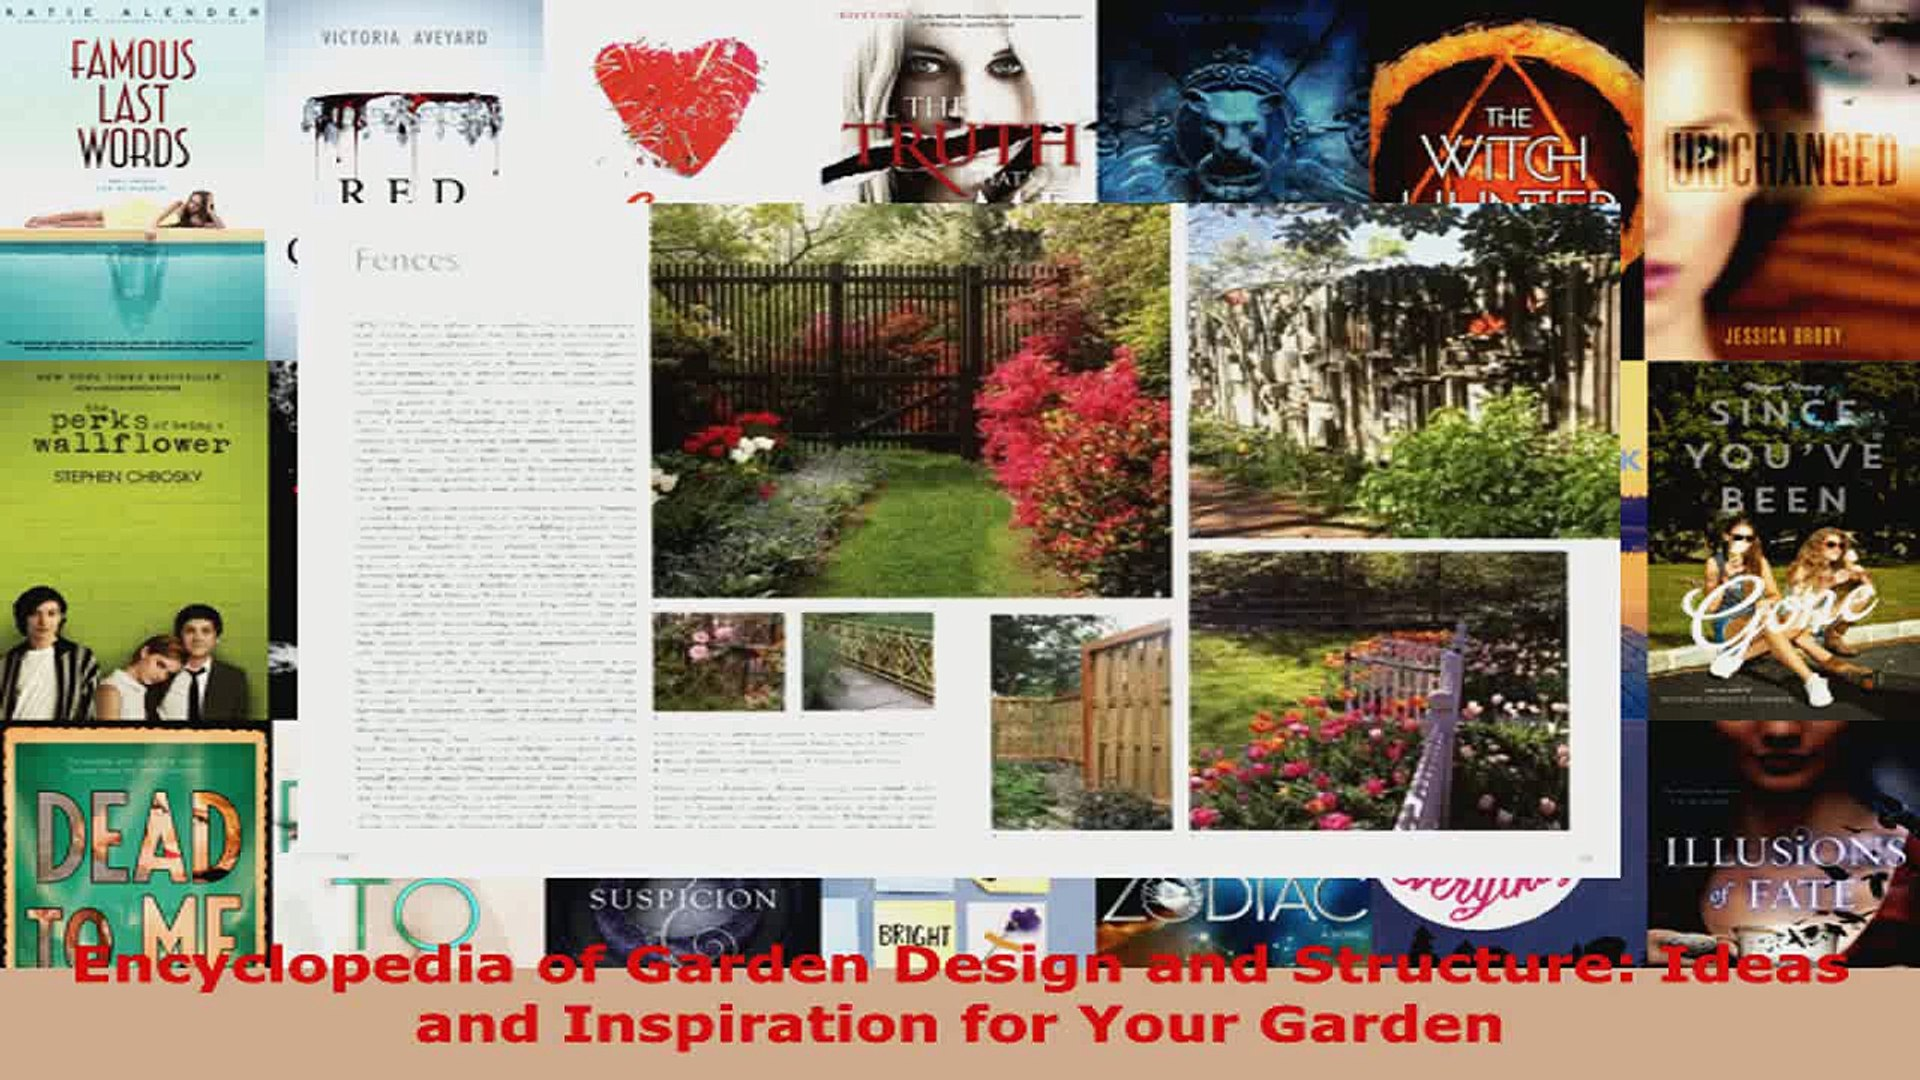 Download  Encyclopedia of Garden Design and Structure Ideas and Inspiration for Your Garden EBooks O